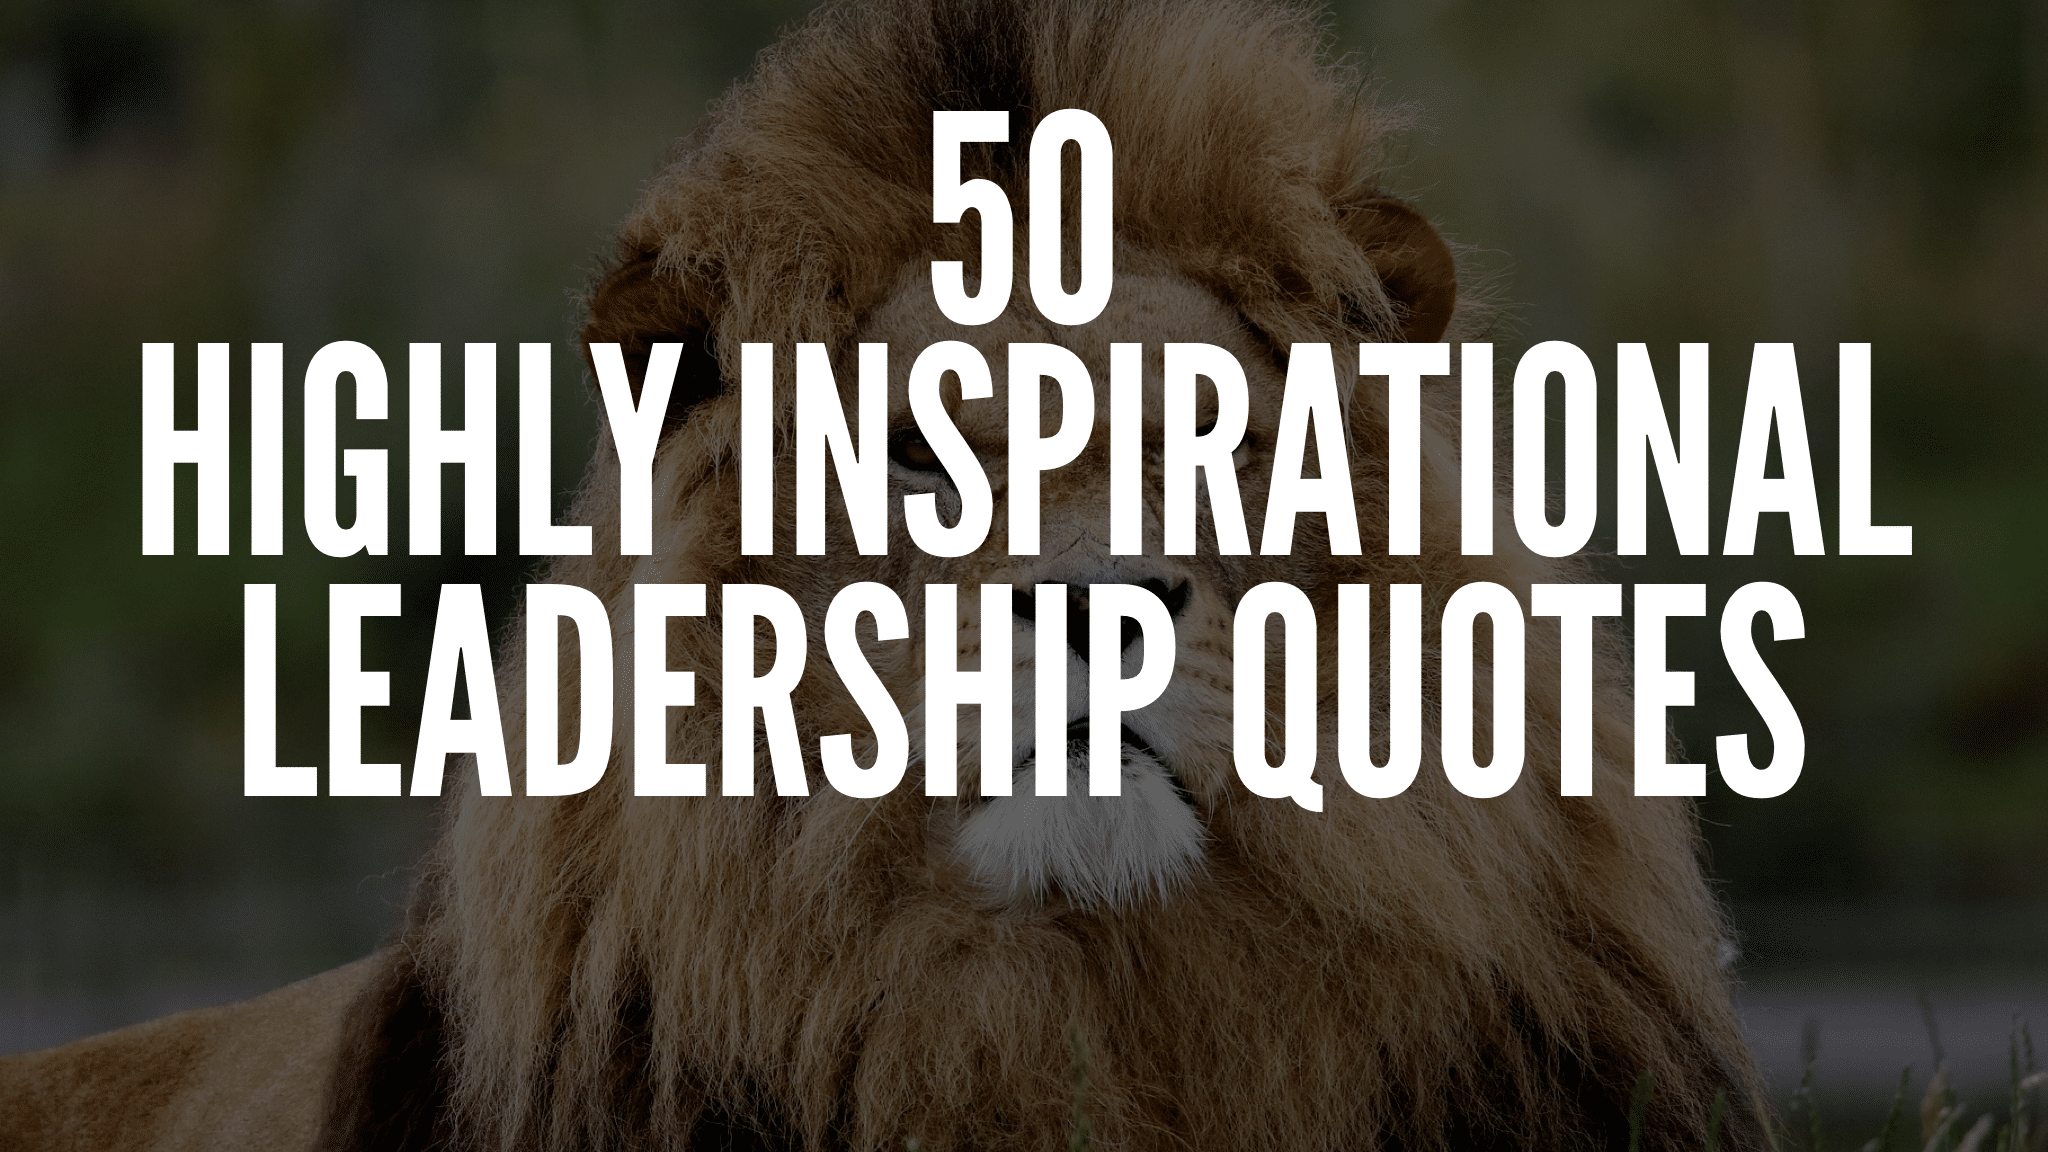 Highly Inspirational Leadership Quotes